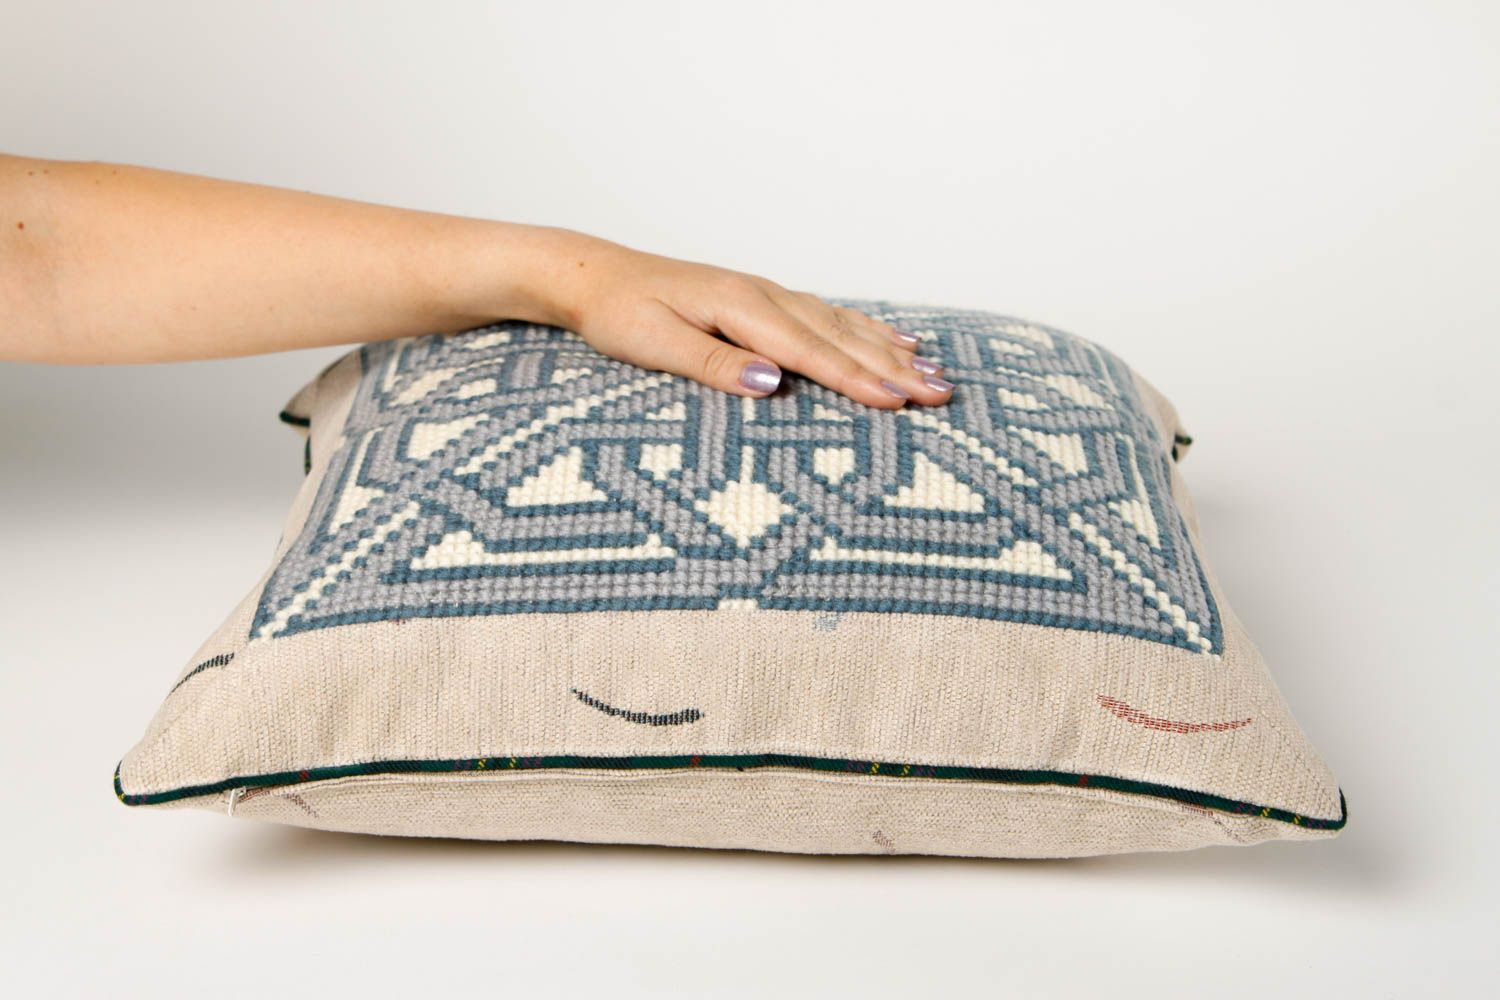 Handmade Throw Pillow Soft Cushion Design Embroidery Ideas Small Gifts